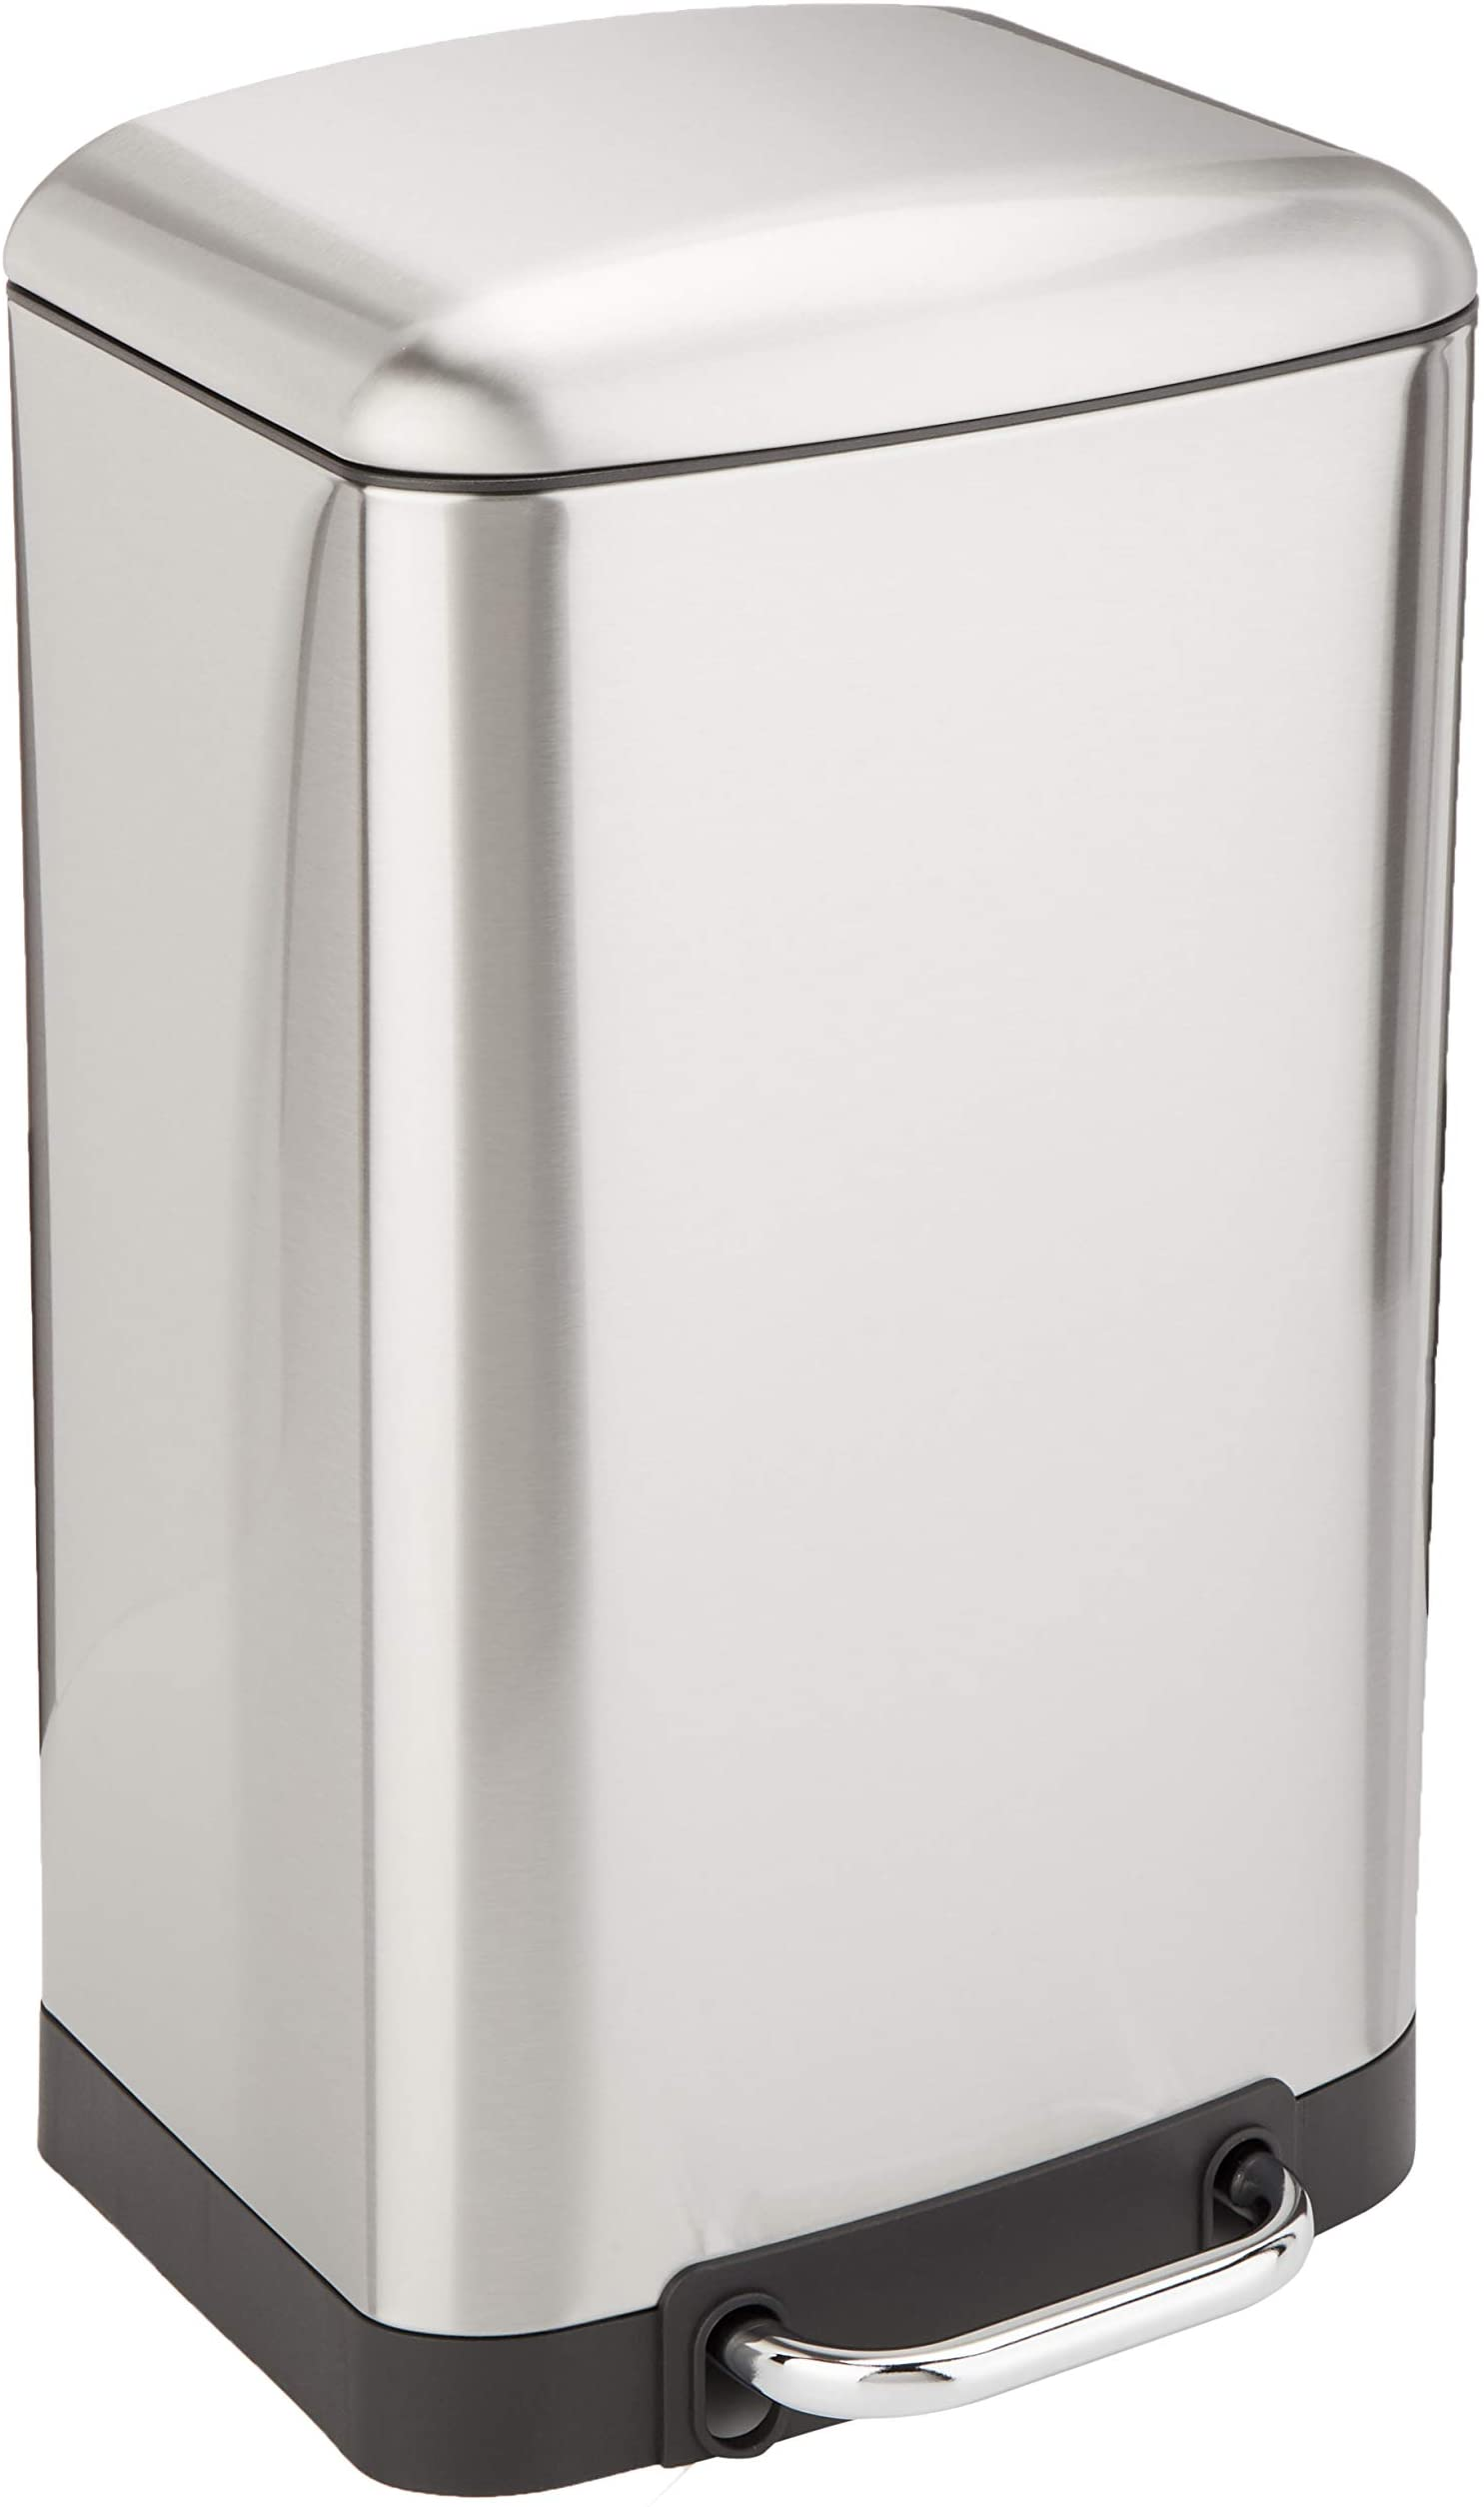 Amazon Basics 20 Liter / 5.3 Gallon Gallon Soft-Close Trash Can with Foot Pedal - Stainless Steel